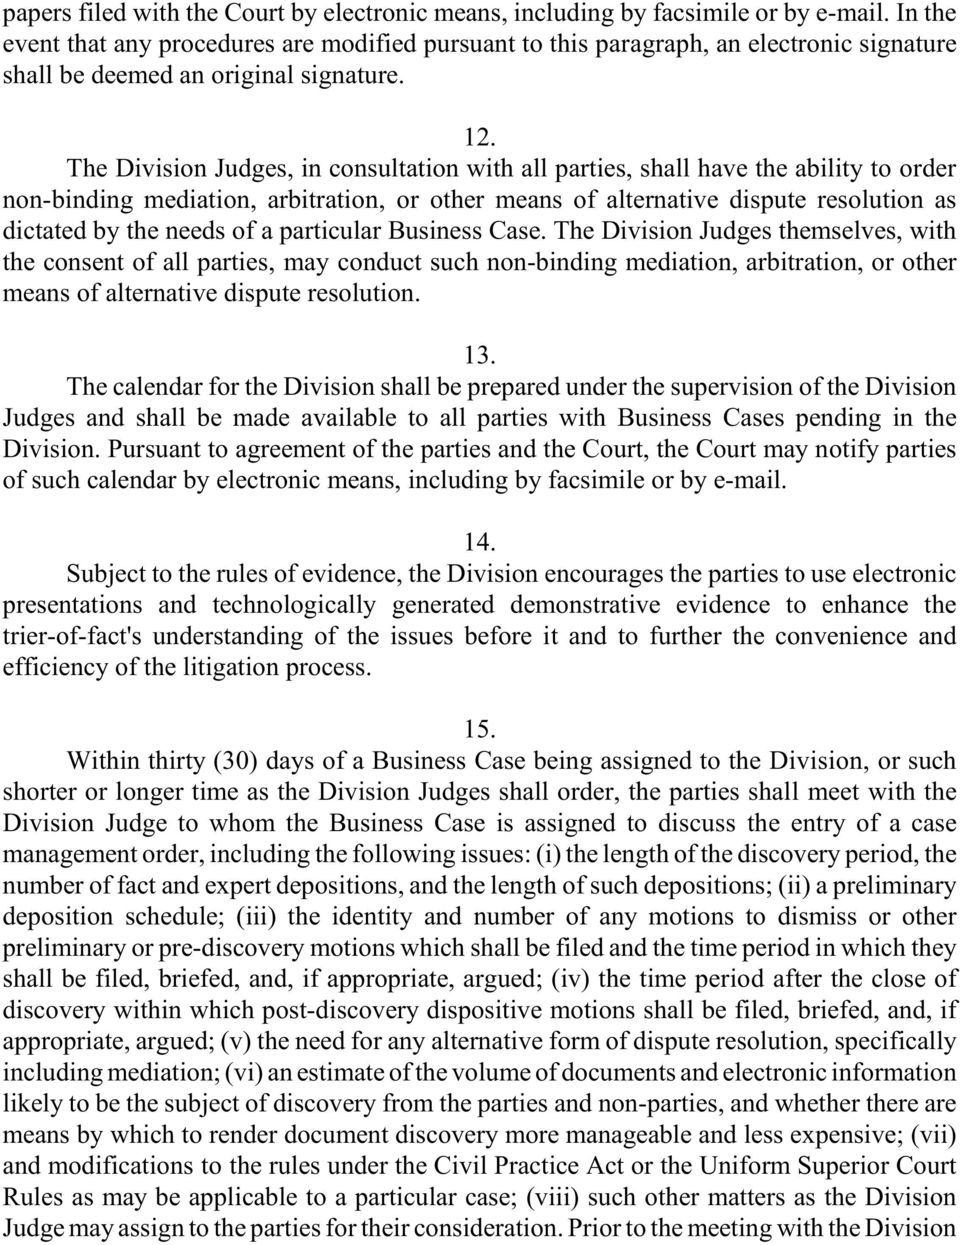 The Division Judges, in consultation with all parties, shall have the ability to order non-binding mediation, arbitration, or other means of alternative dispute resolution as dictated by the needs of